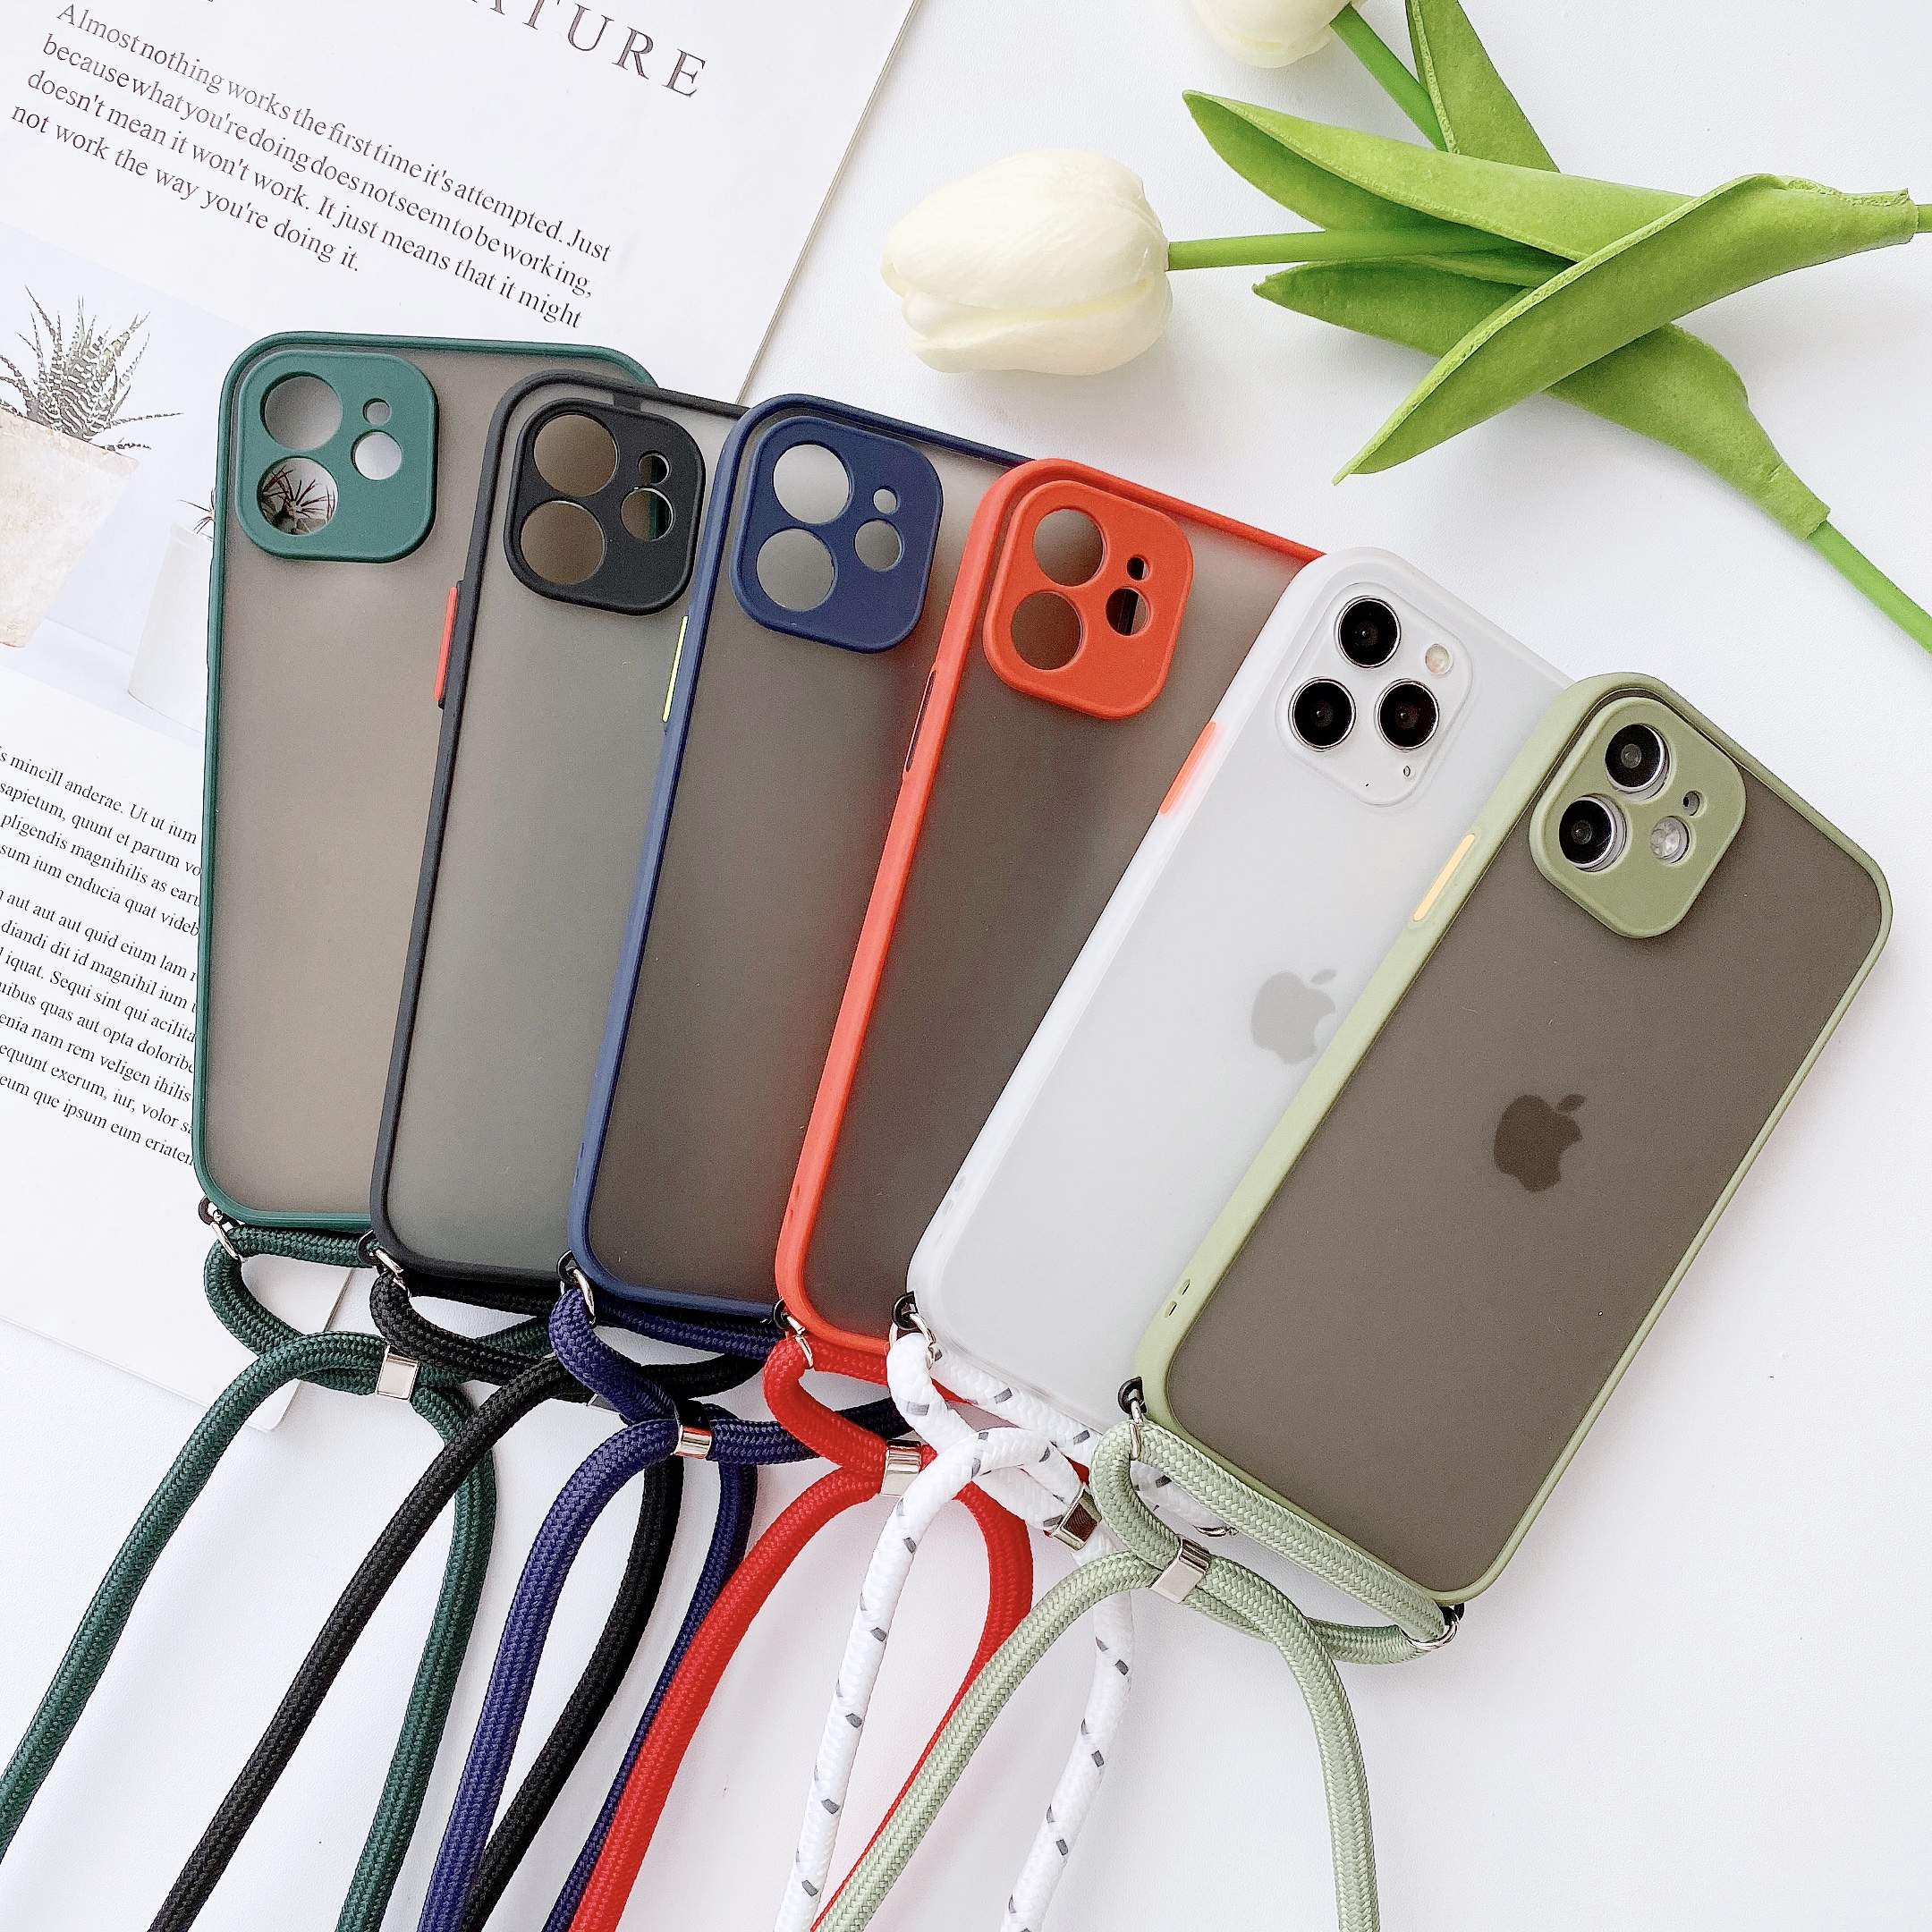 skin feeling Protection Strap Cord Chain Phone case on For iPhone 12 11 Pro Max 8 7 6 Plus Xr X Xs Max SE 2020 Lanyard soft Cove